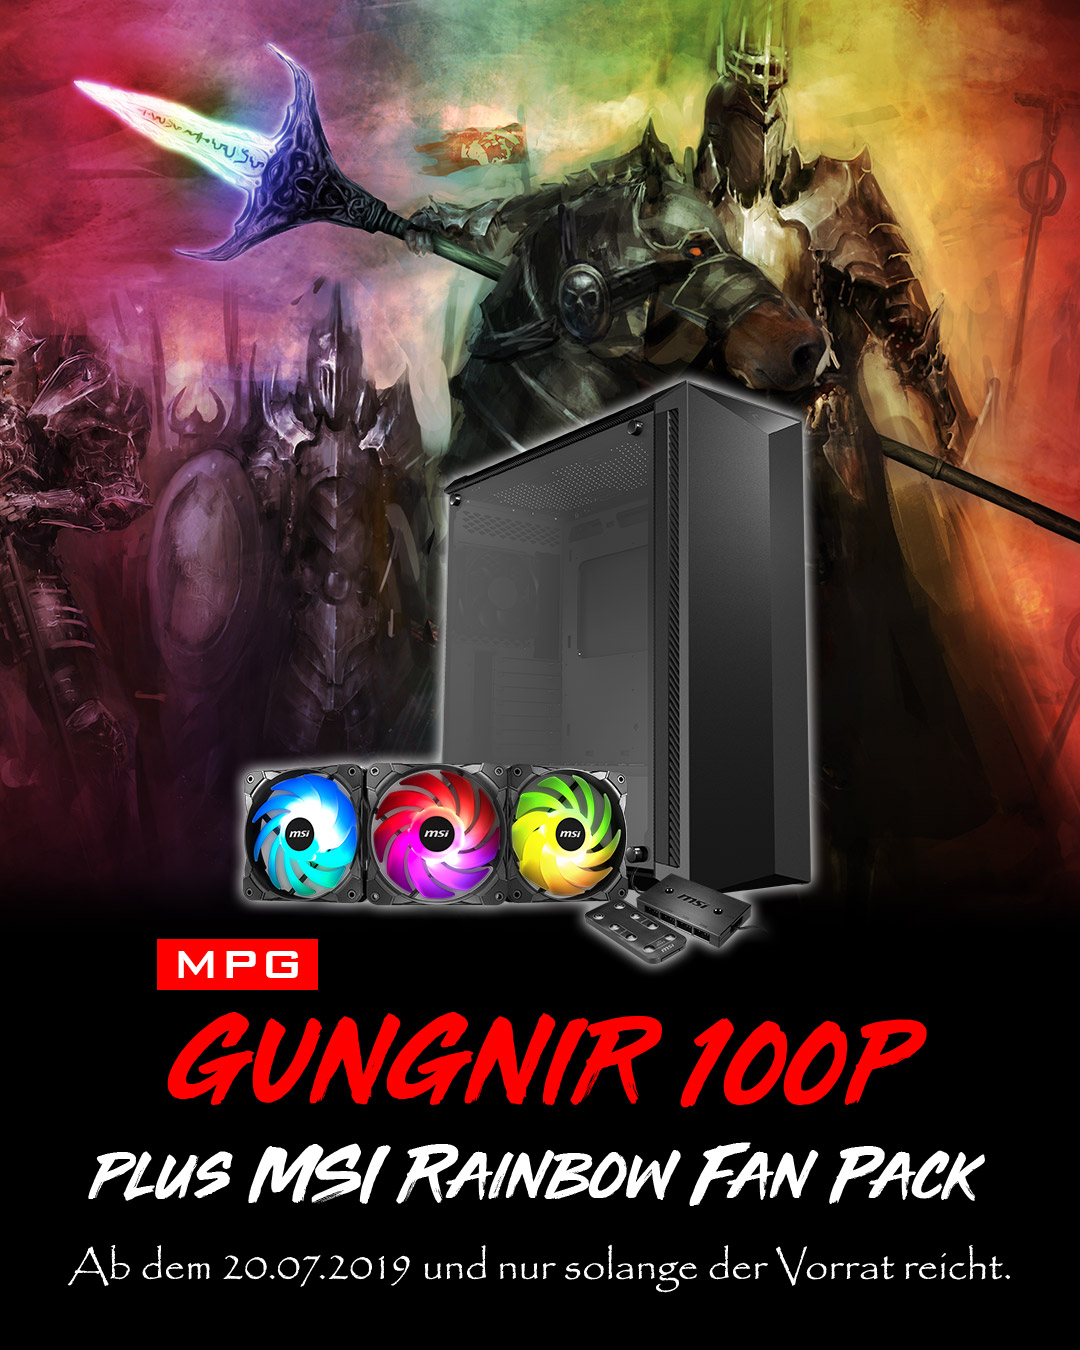 Gungnir 100P Plus MSI Rainbow Fan Pack